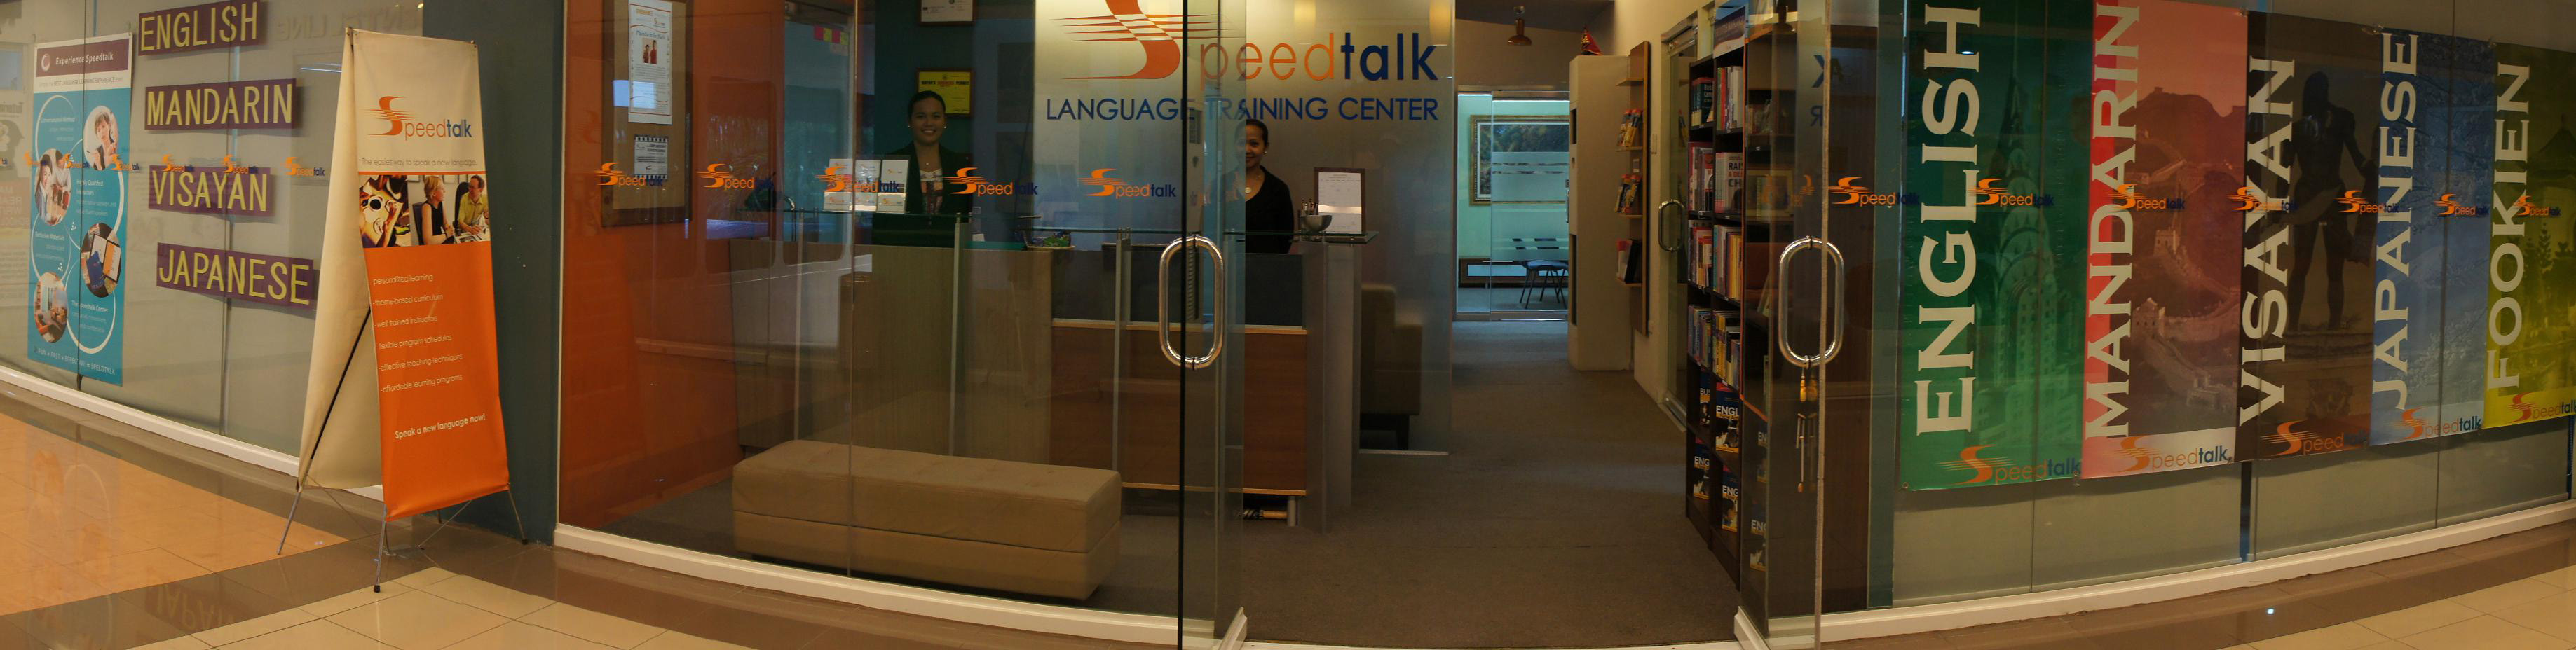 Speedtalk BTC Speedtalk Language Training Center 